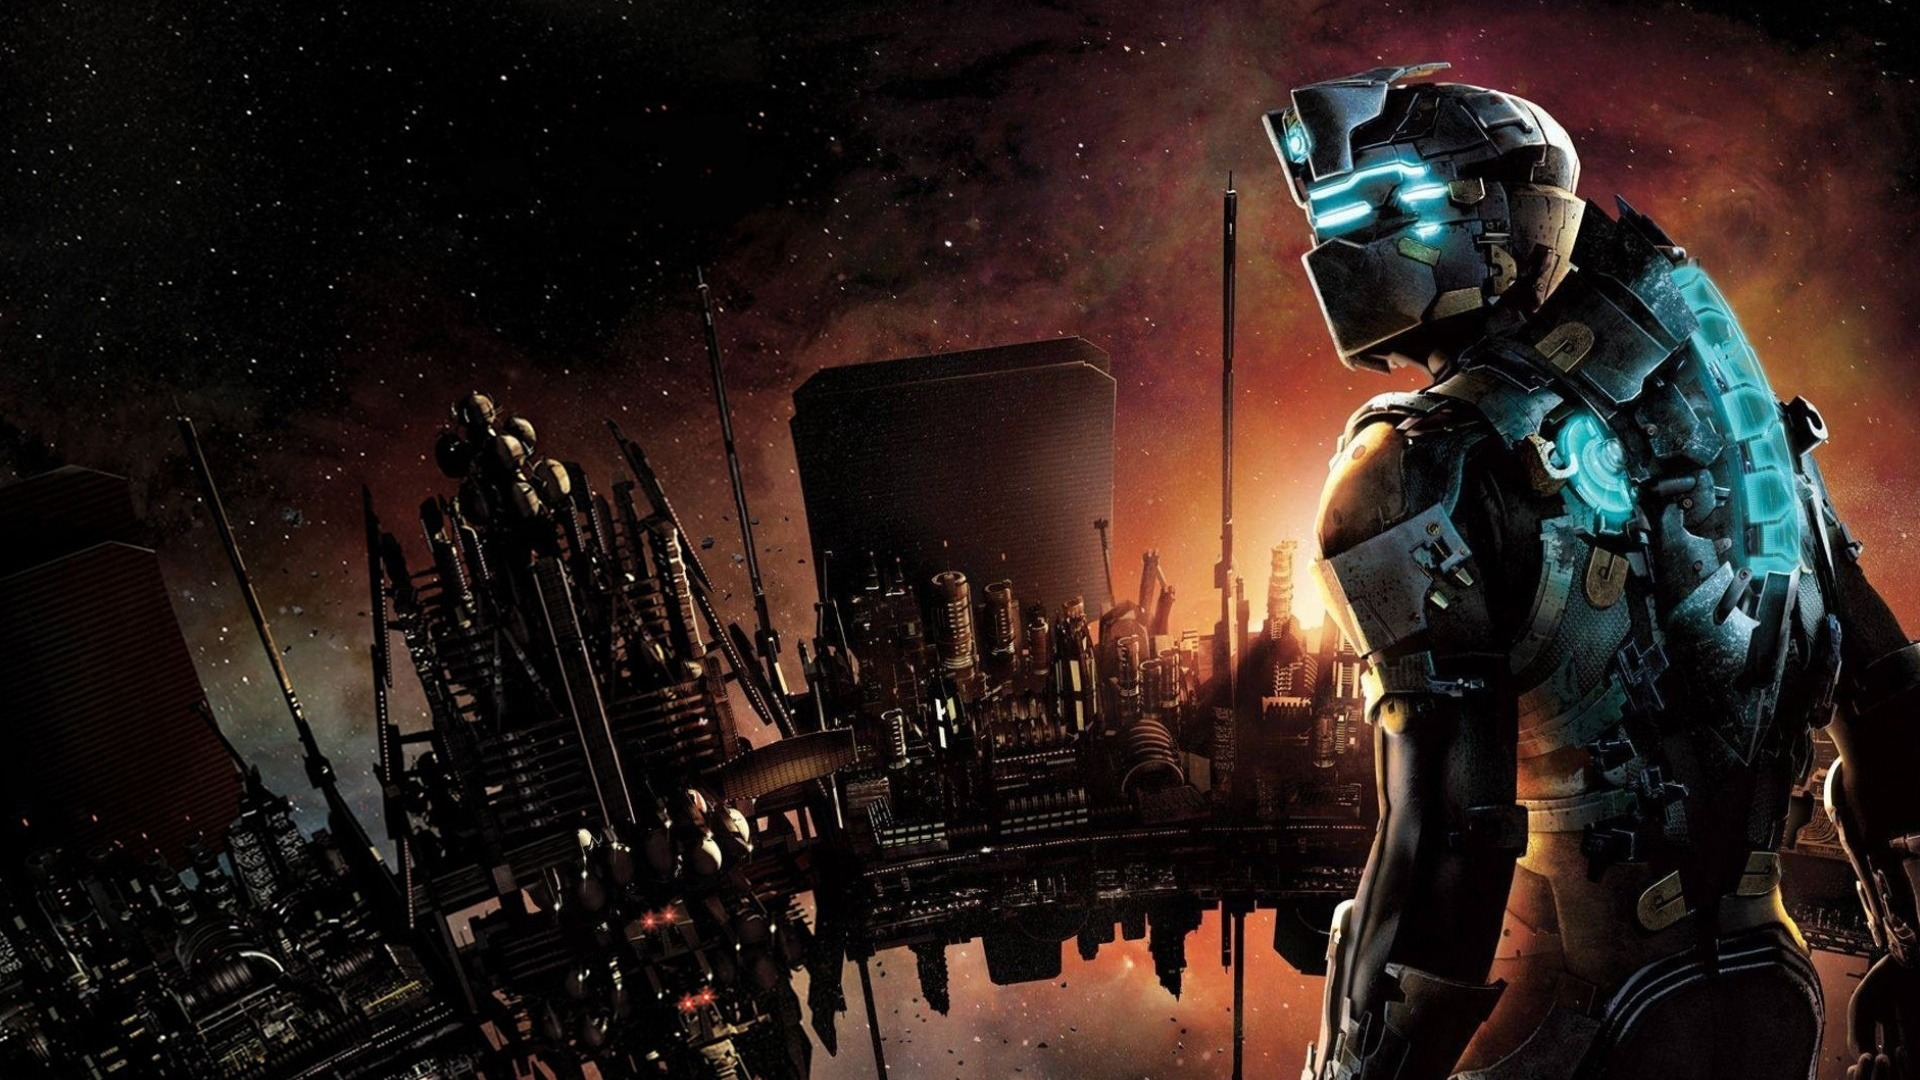 85 Dead Space 2 HD Wallpapers | Backgrounds - Wallpaper Abyss